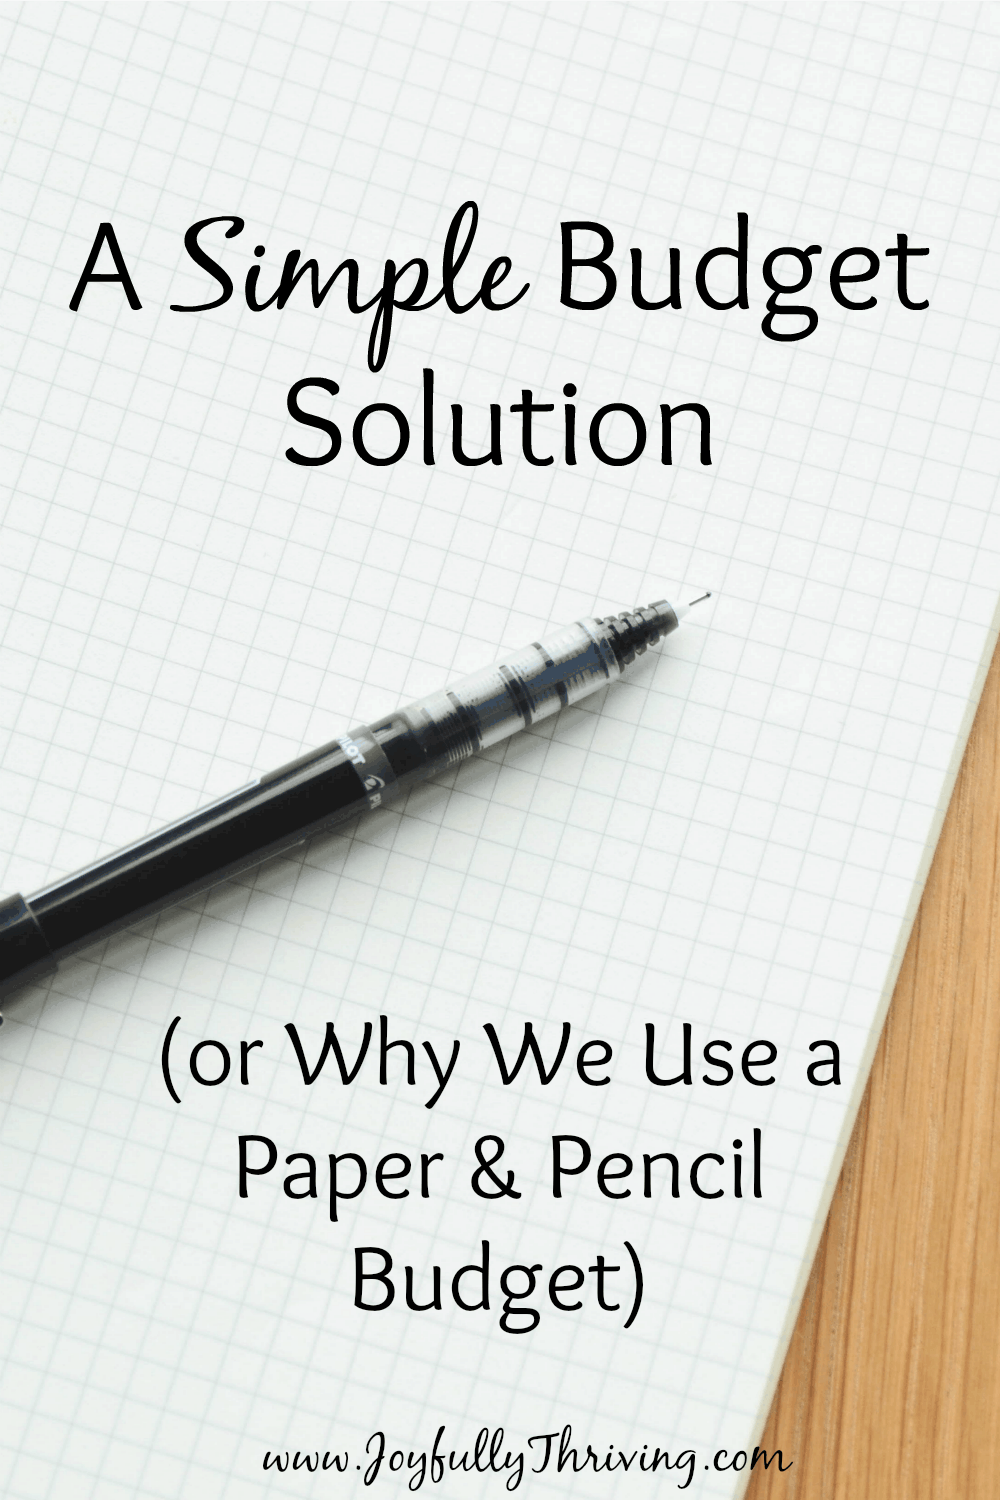 a simple budget solution or why we use a paper and pencil budget